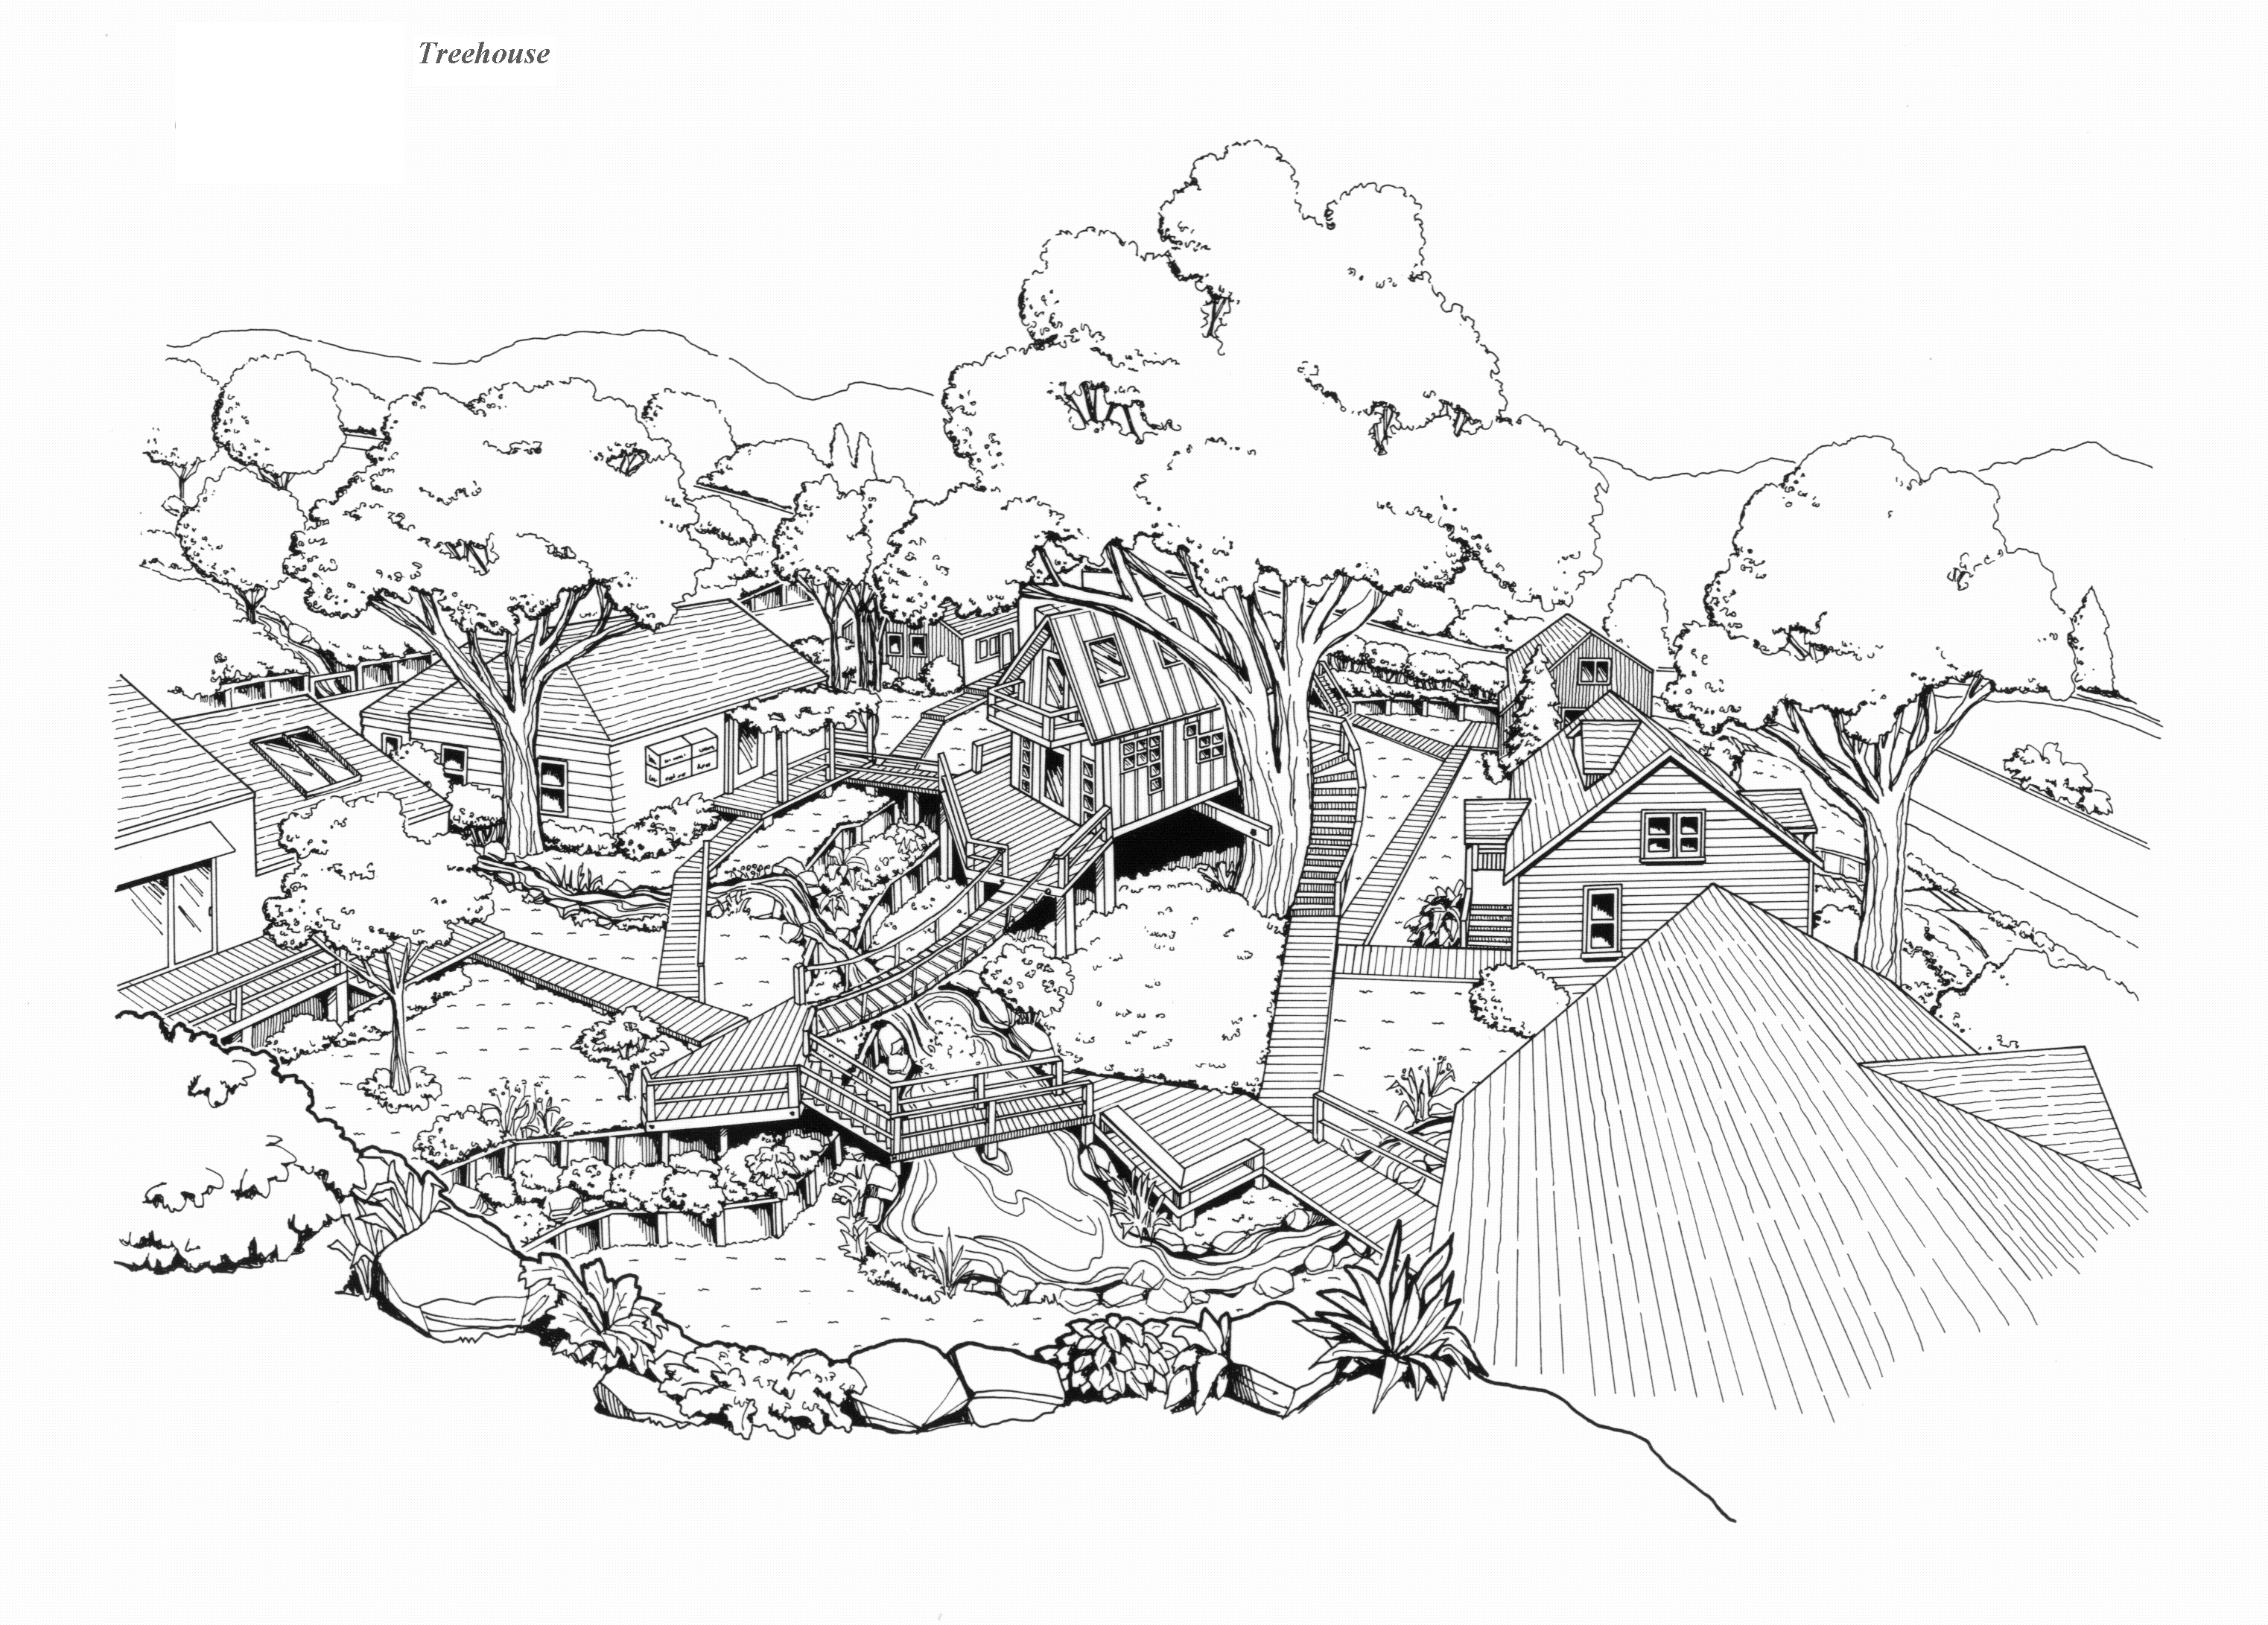 Shelter And Roof Playground Tree House Sketch Design With